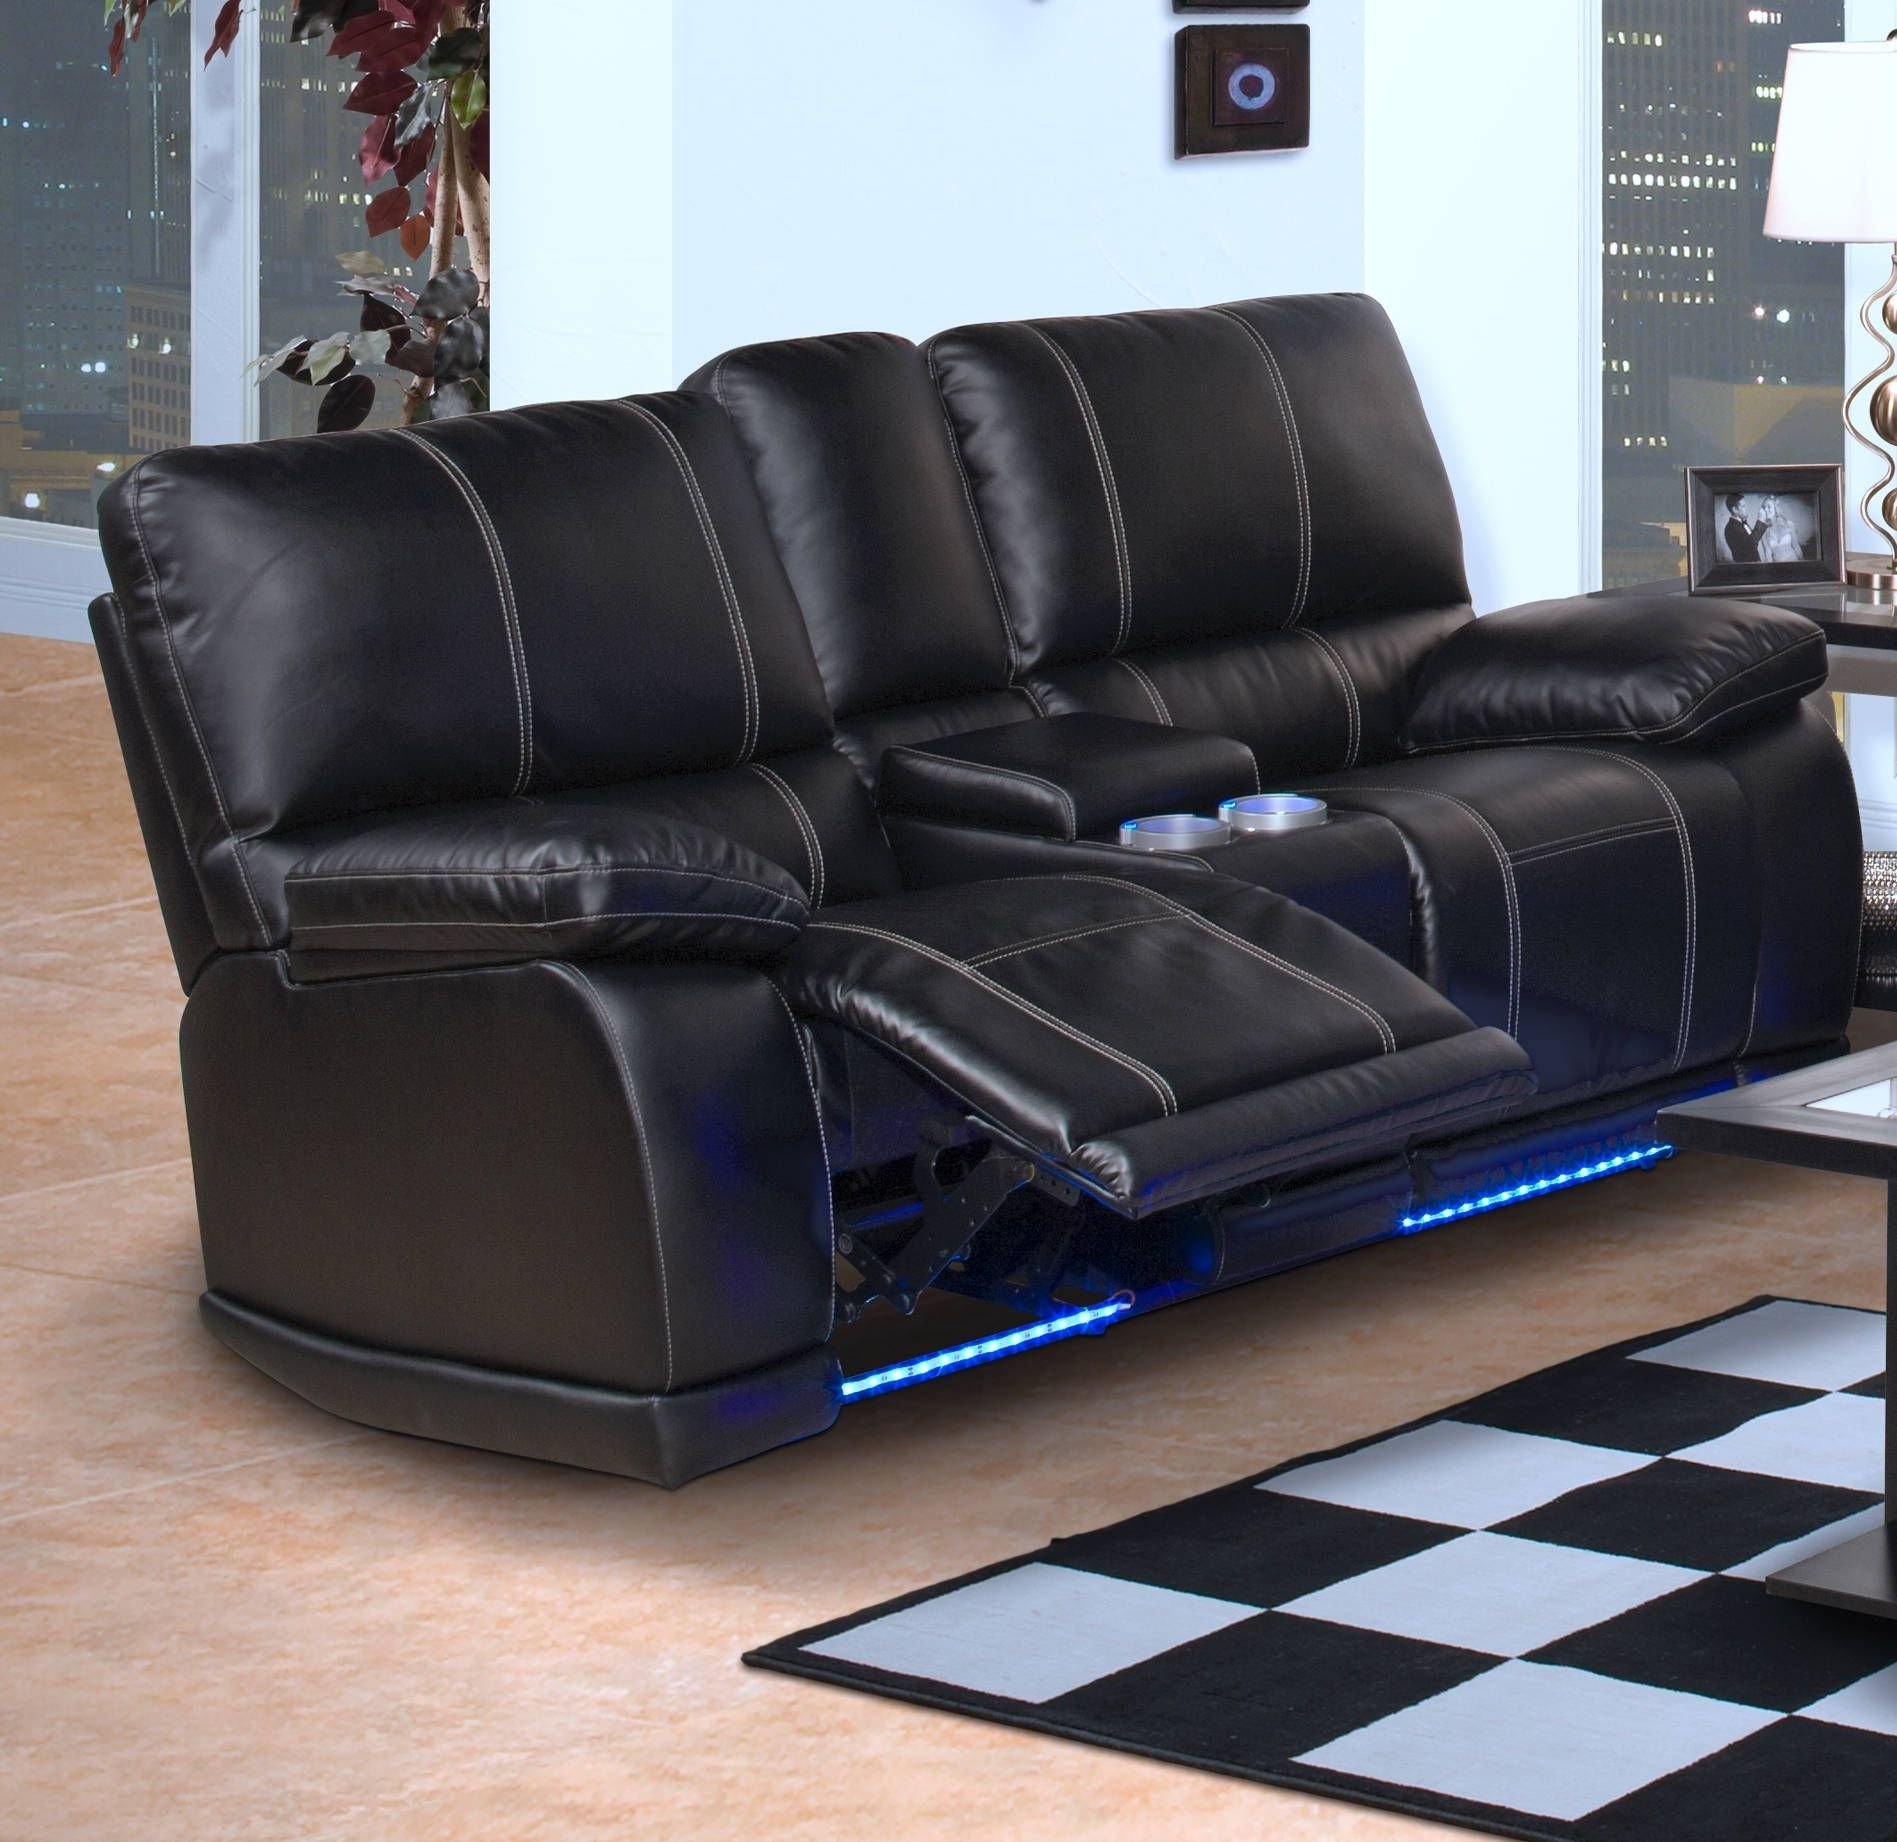 Electra Black Bonded Leather Hardwood Dual Recliner Console Loveseat